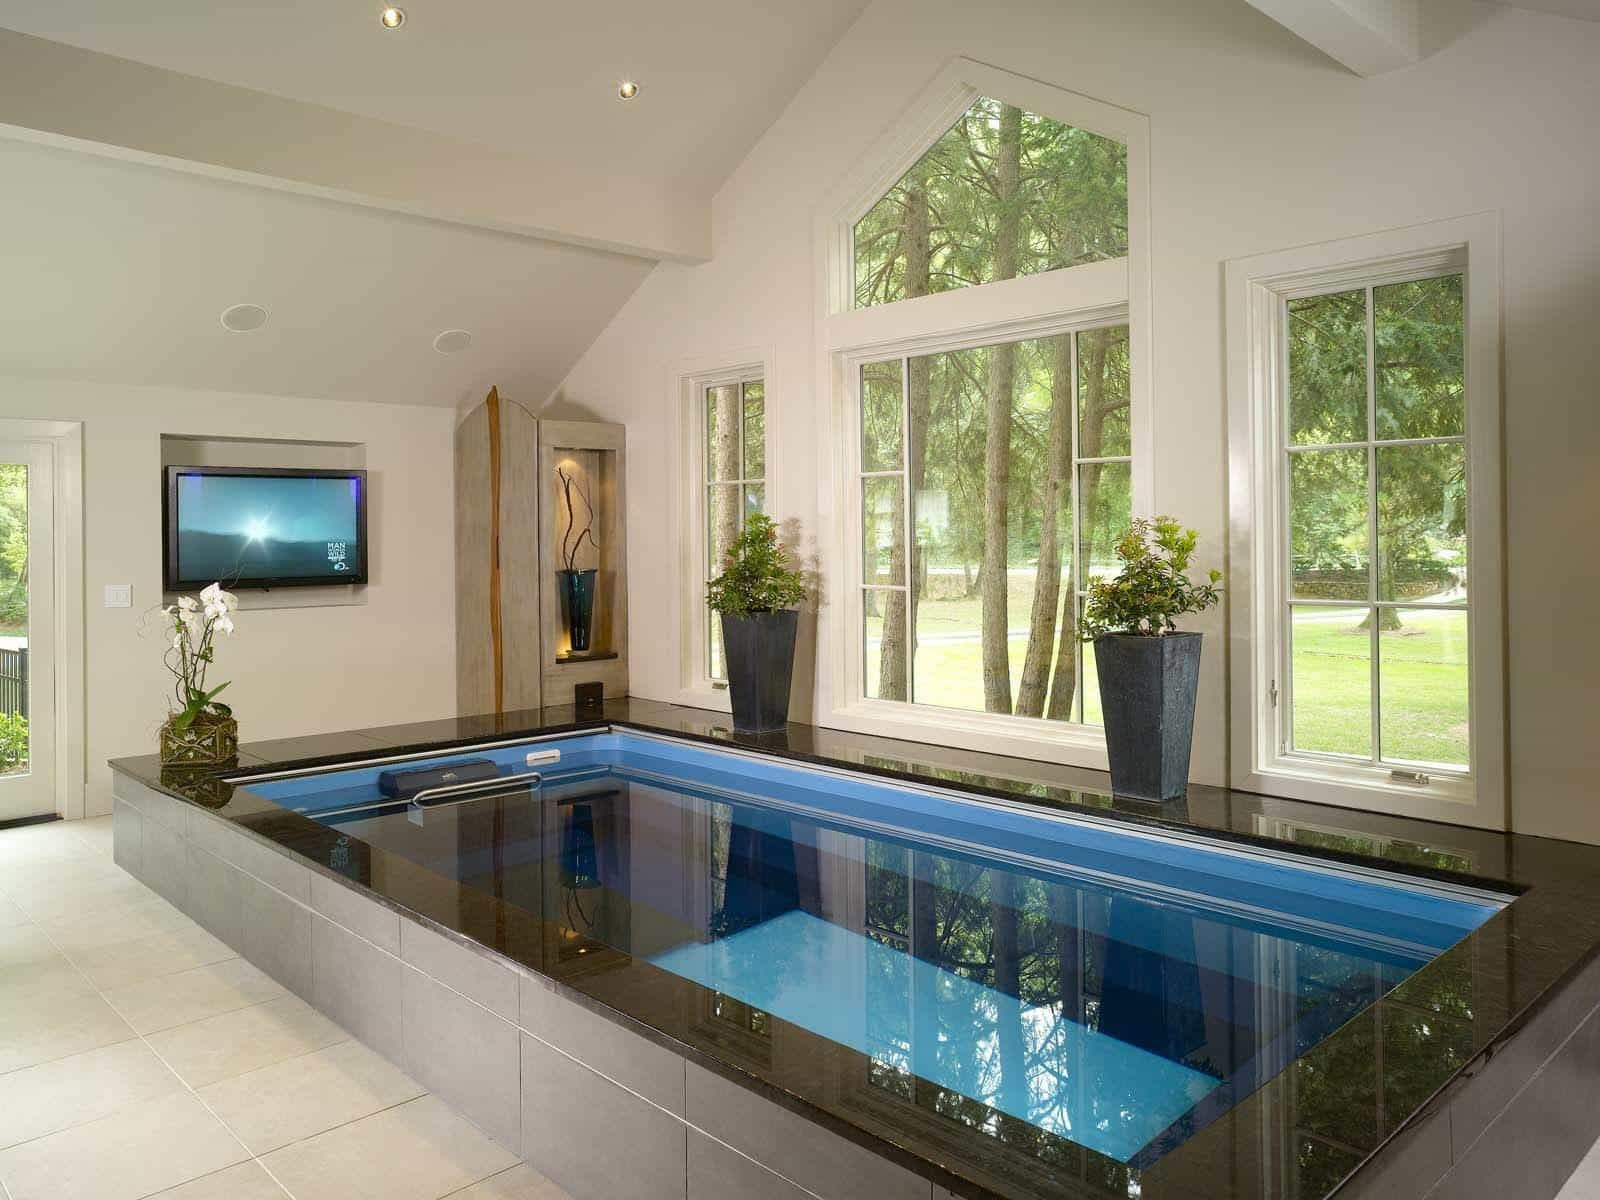 Awesome Indoor Swimming Pool For Your Home Small Indoor Pool Indoor Pool House Indoor Swimming Pool Design